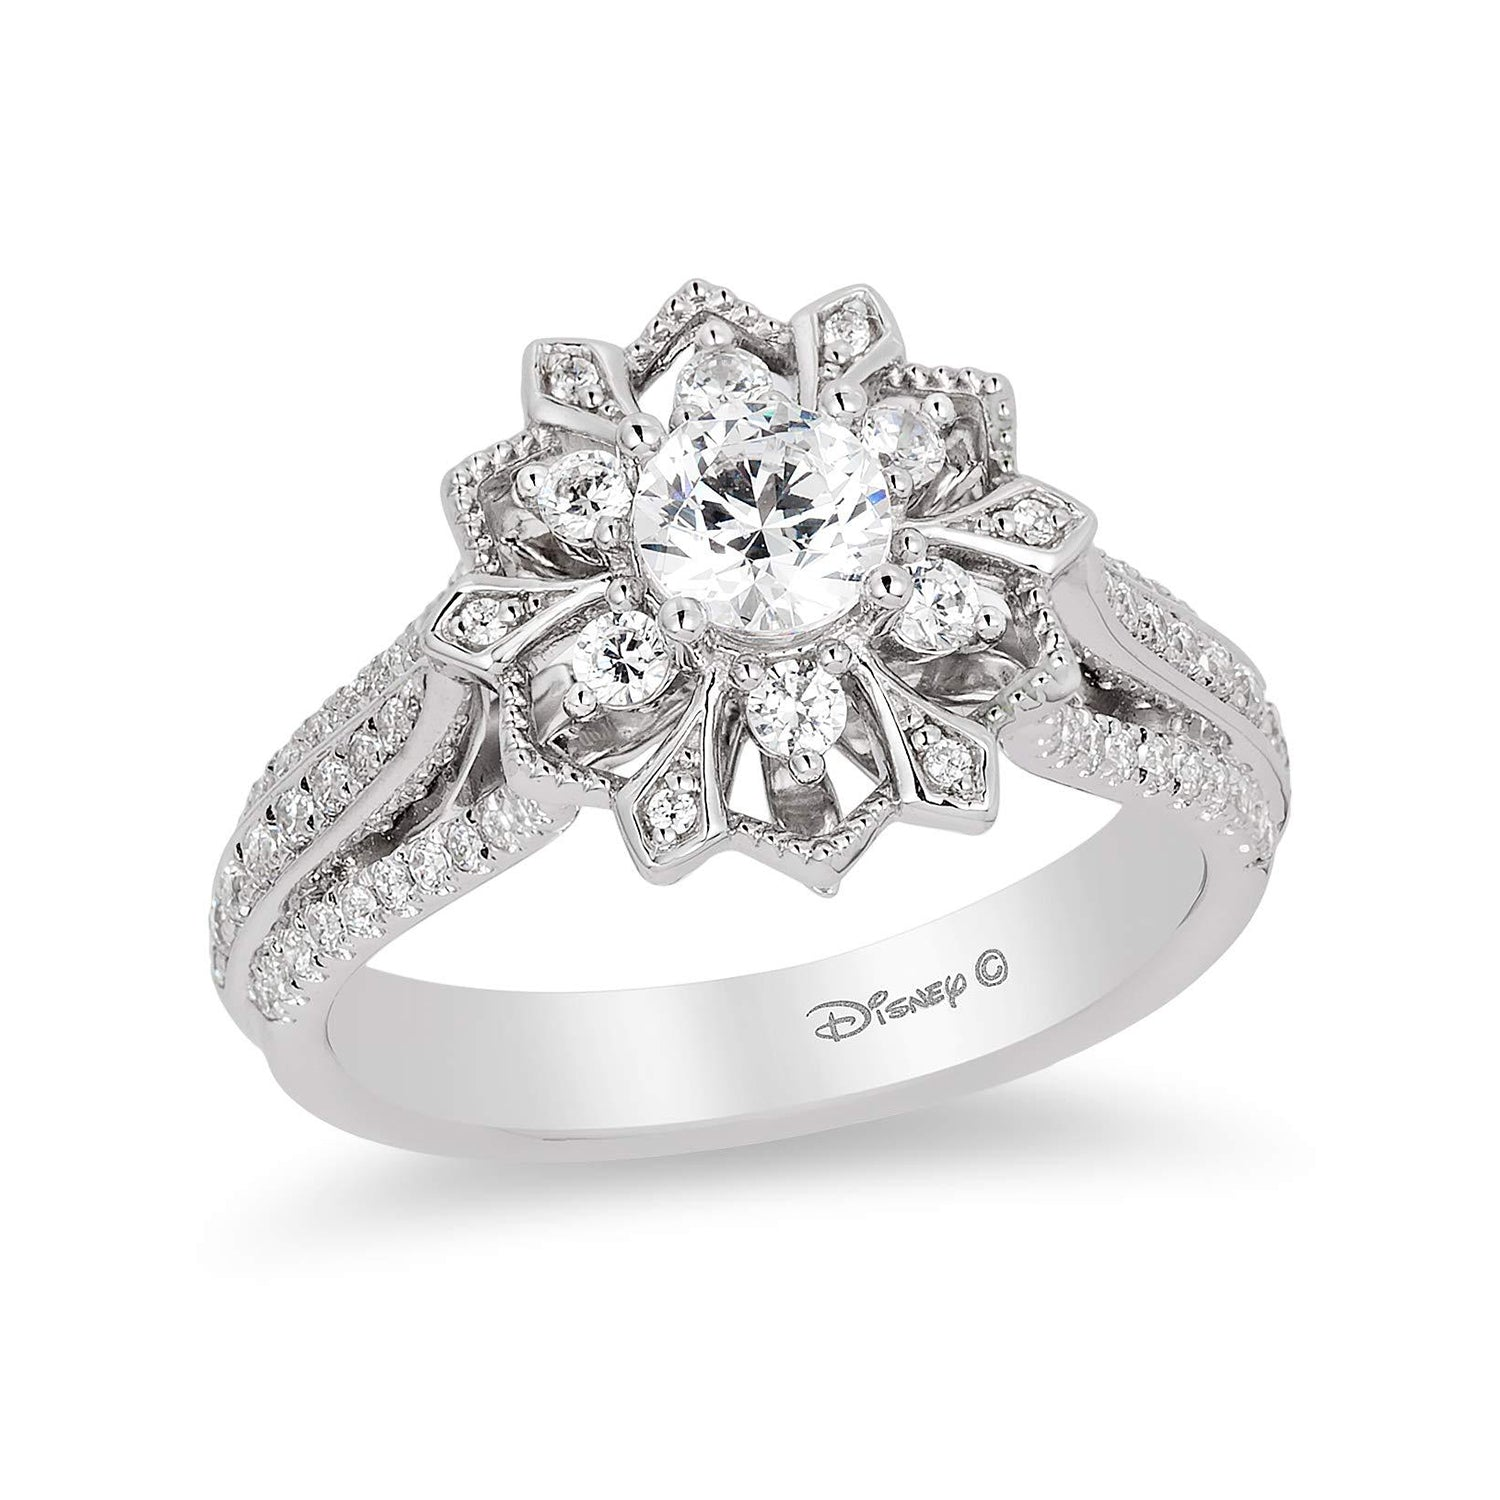 enchanted_disney-elsa_snowflake_ring-white_gold_1CTTW_1